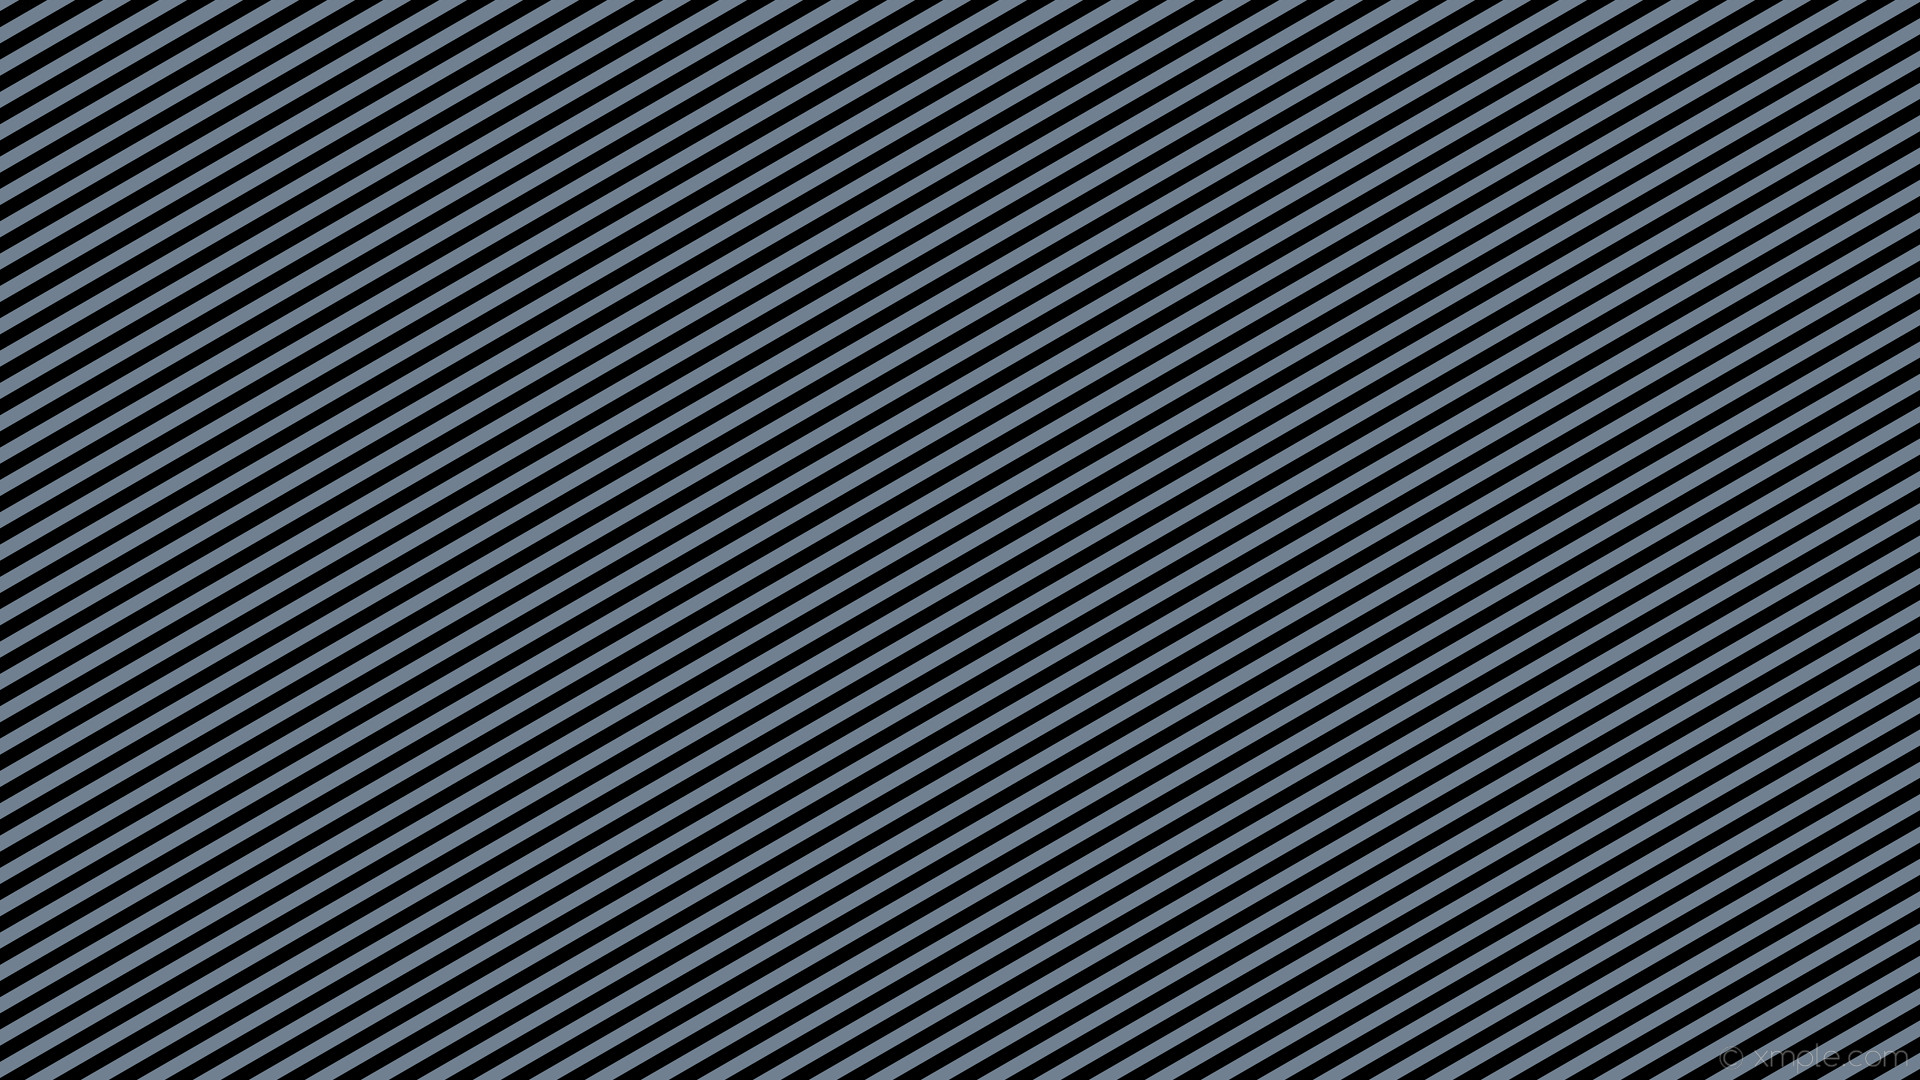 wallpaper streaks grey stripes lines black slate gray #708090 #000000  diagonal 30° 14px